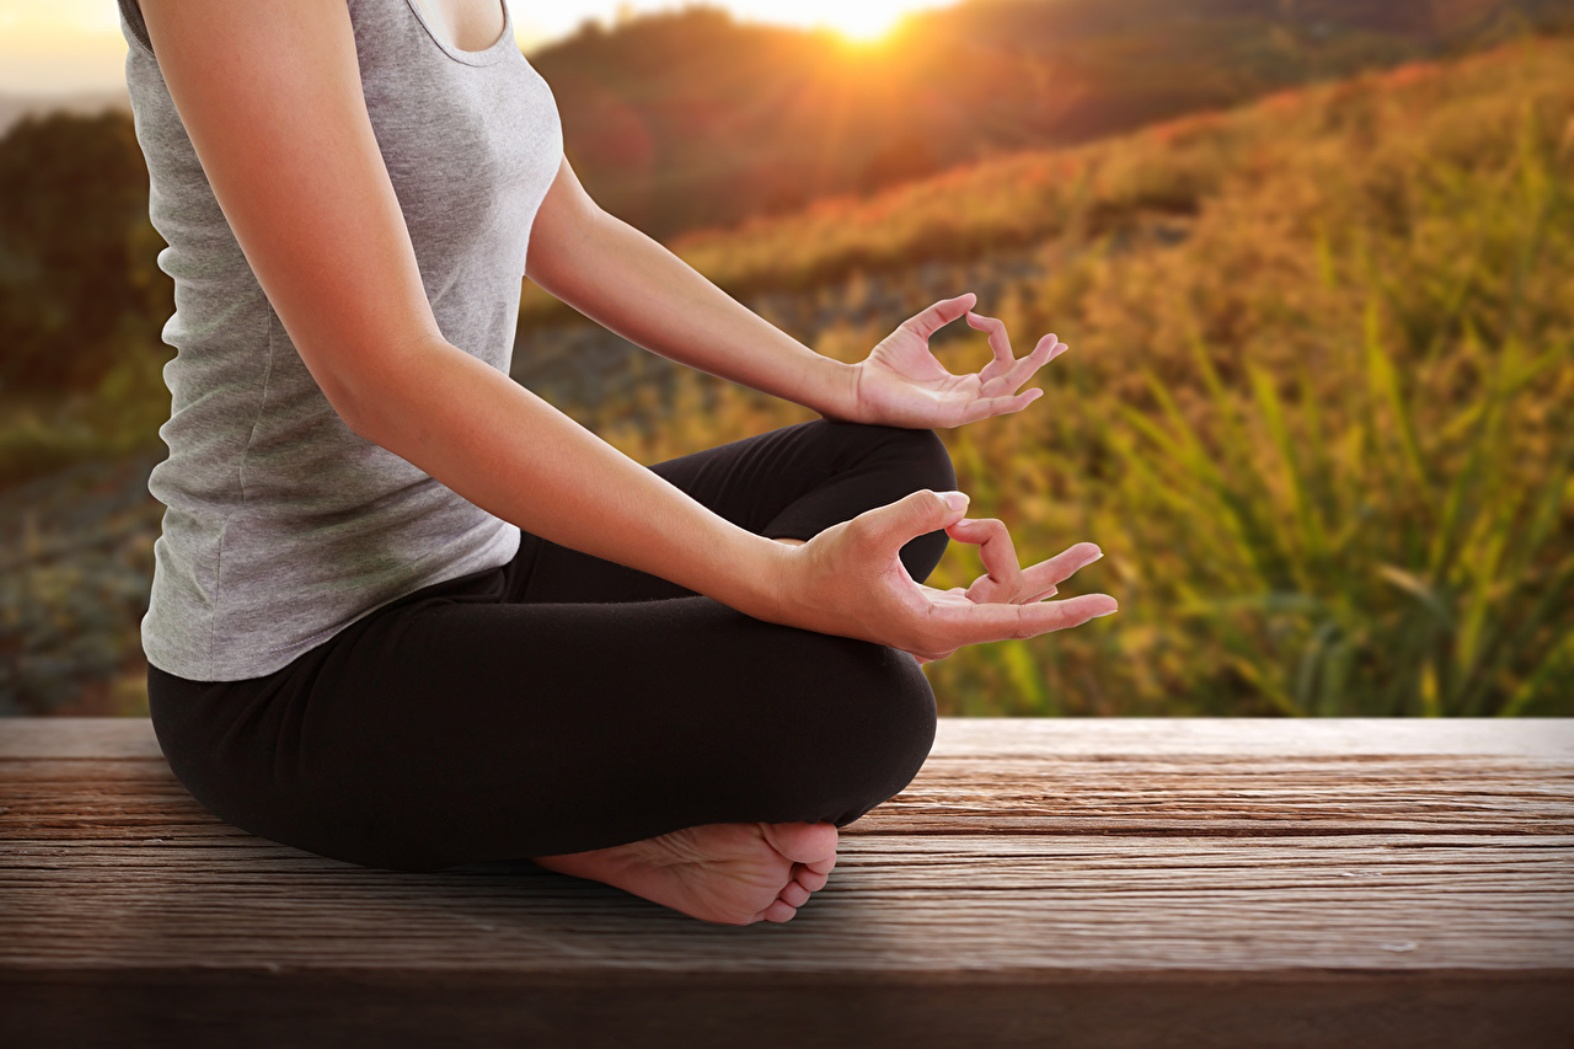 Some miraculous benefits of meditation